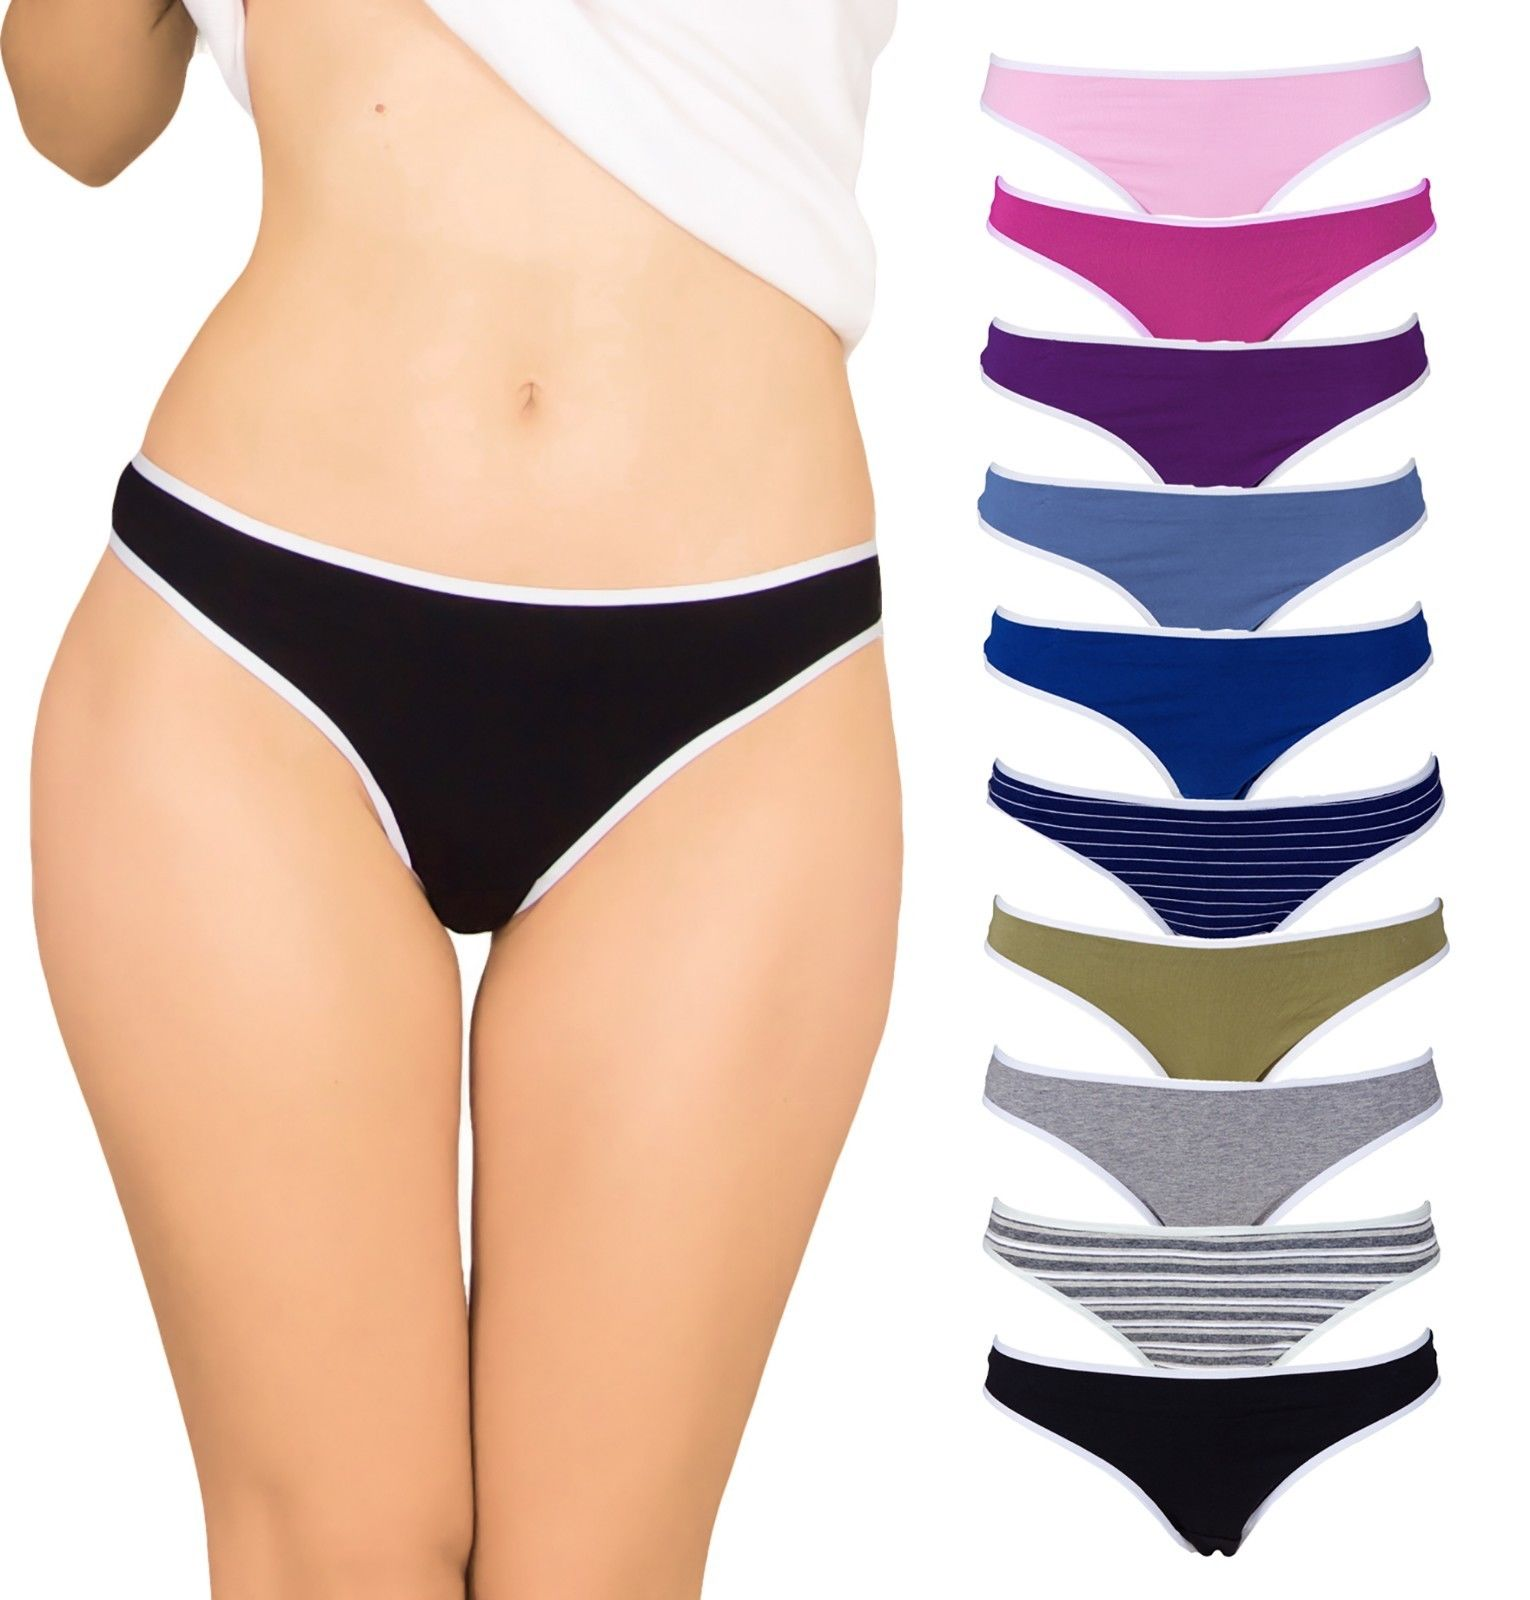 Emprella Womens Underwear Thong Panties - 10 Pack Colors and Patterns May Vary